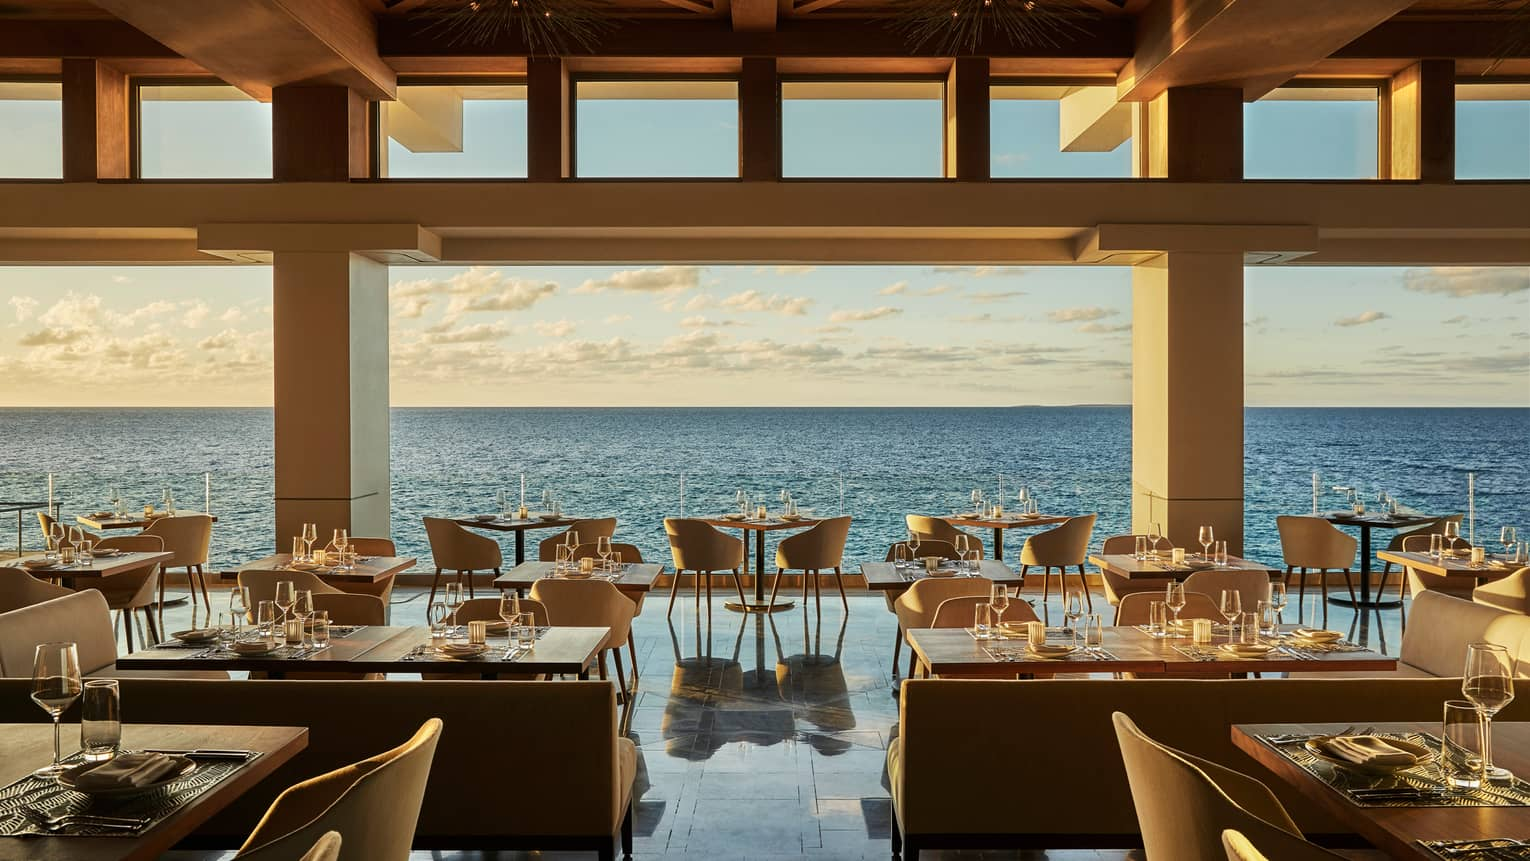 Elegant Coba open-air restaurant with dining tables and chairs, gleaming floors over open ocean